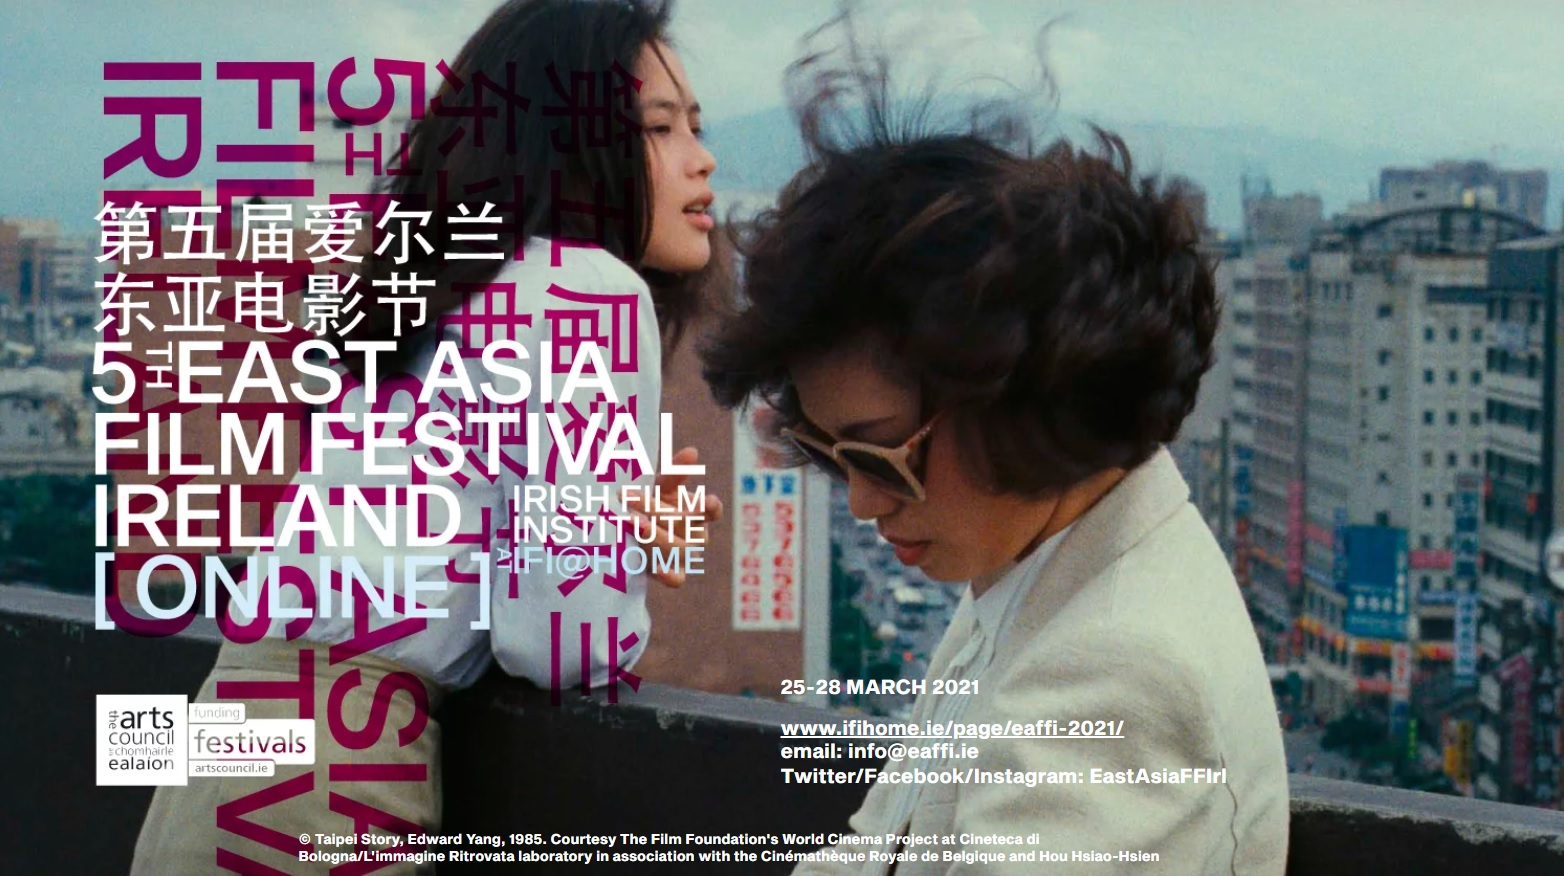 Three Taiwanese dramas featured at East Asia Film Festival Ireland